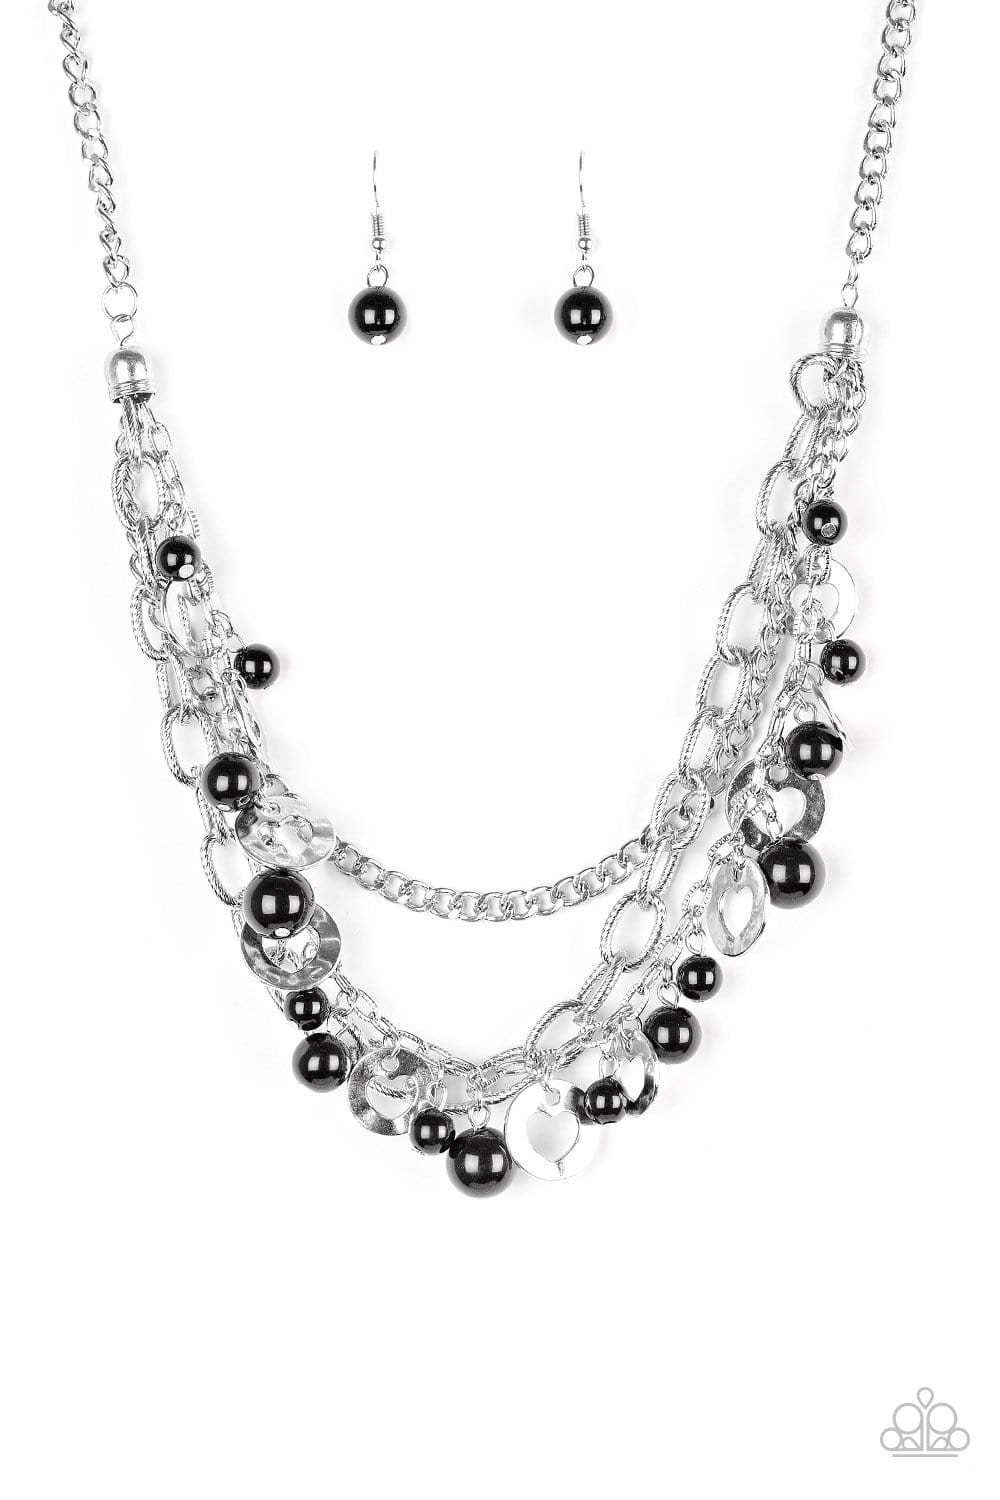 Hoppin Hearts - Black - Jewels N' Thingz Boutique